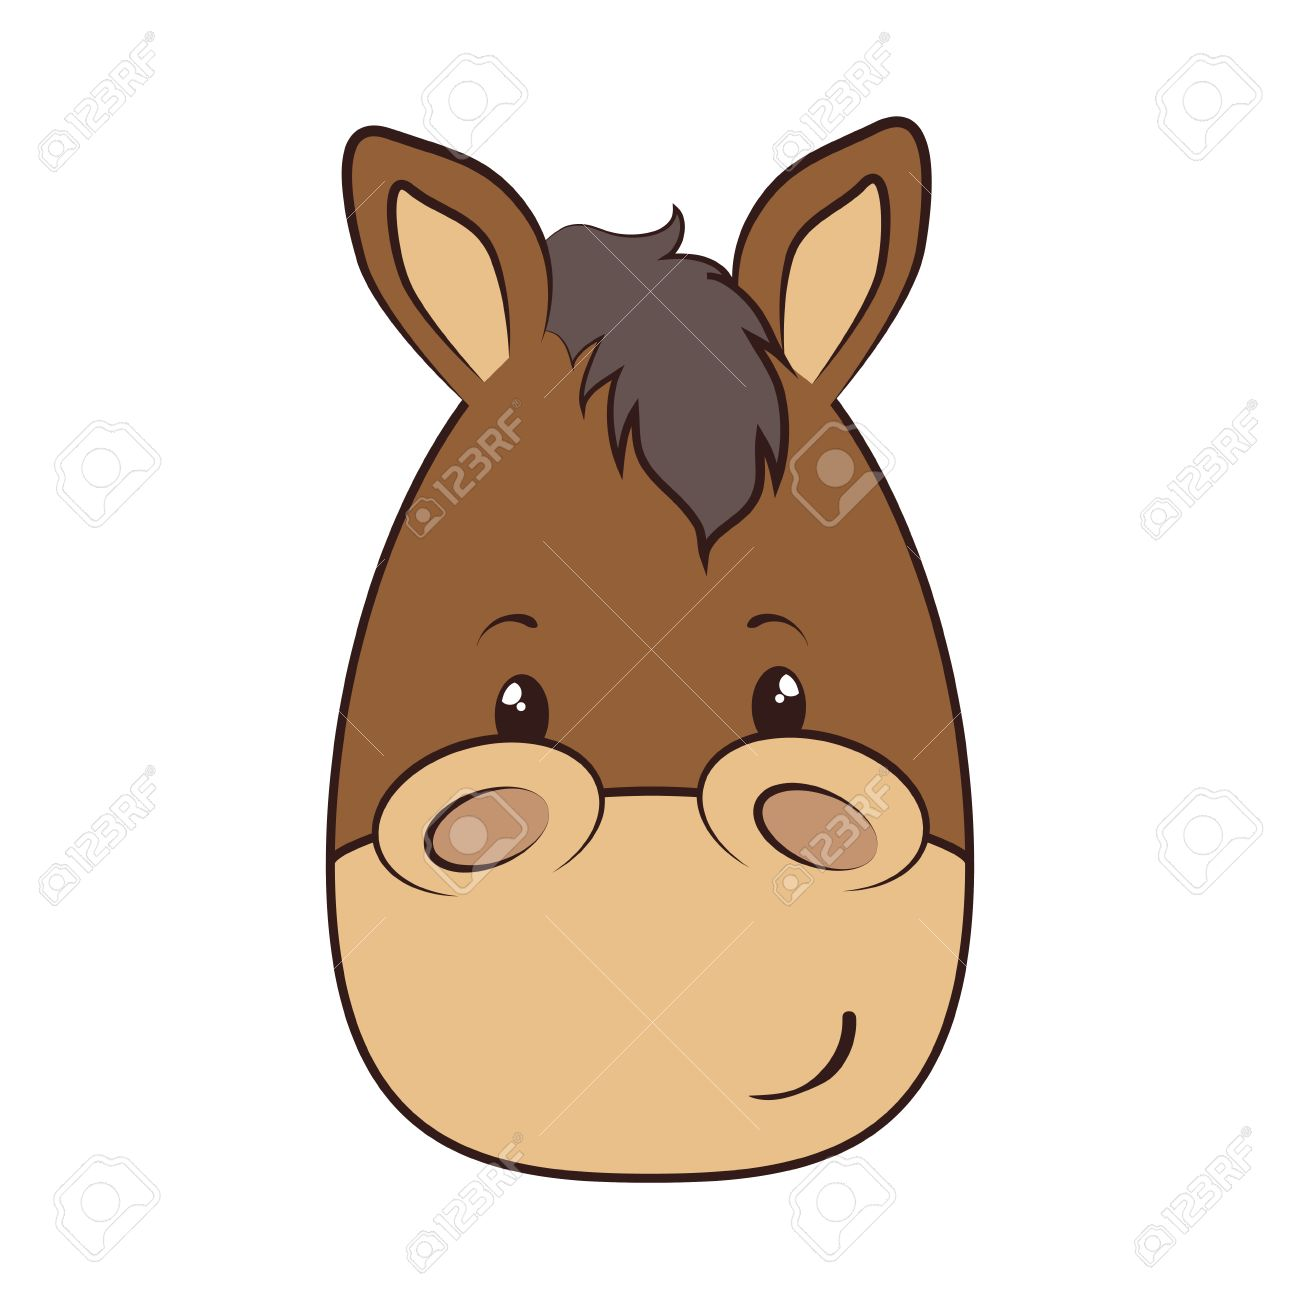 Horse Face Clipart.